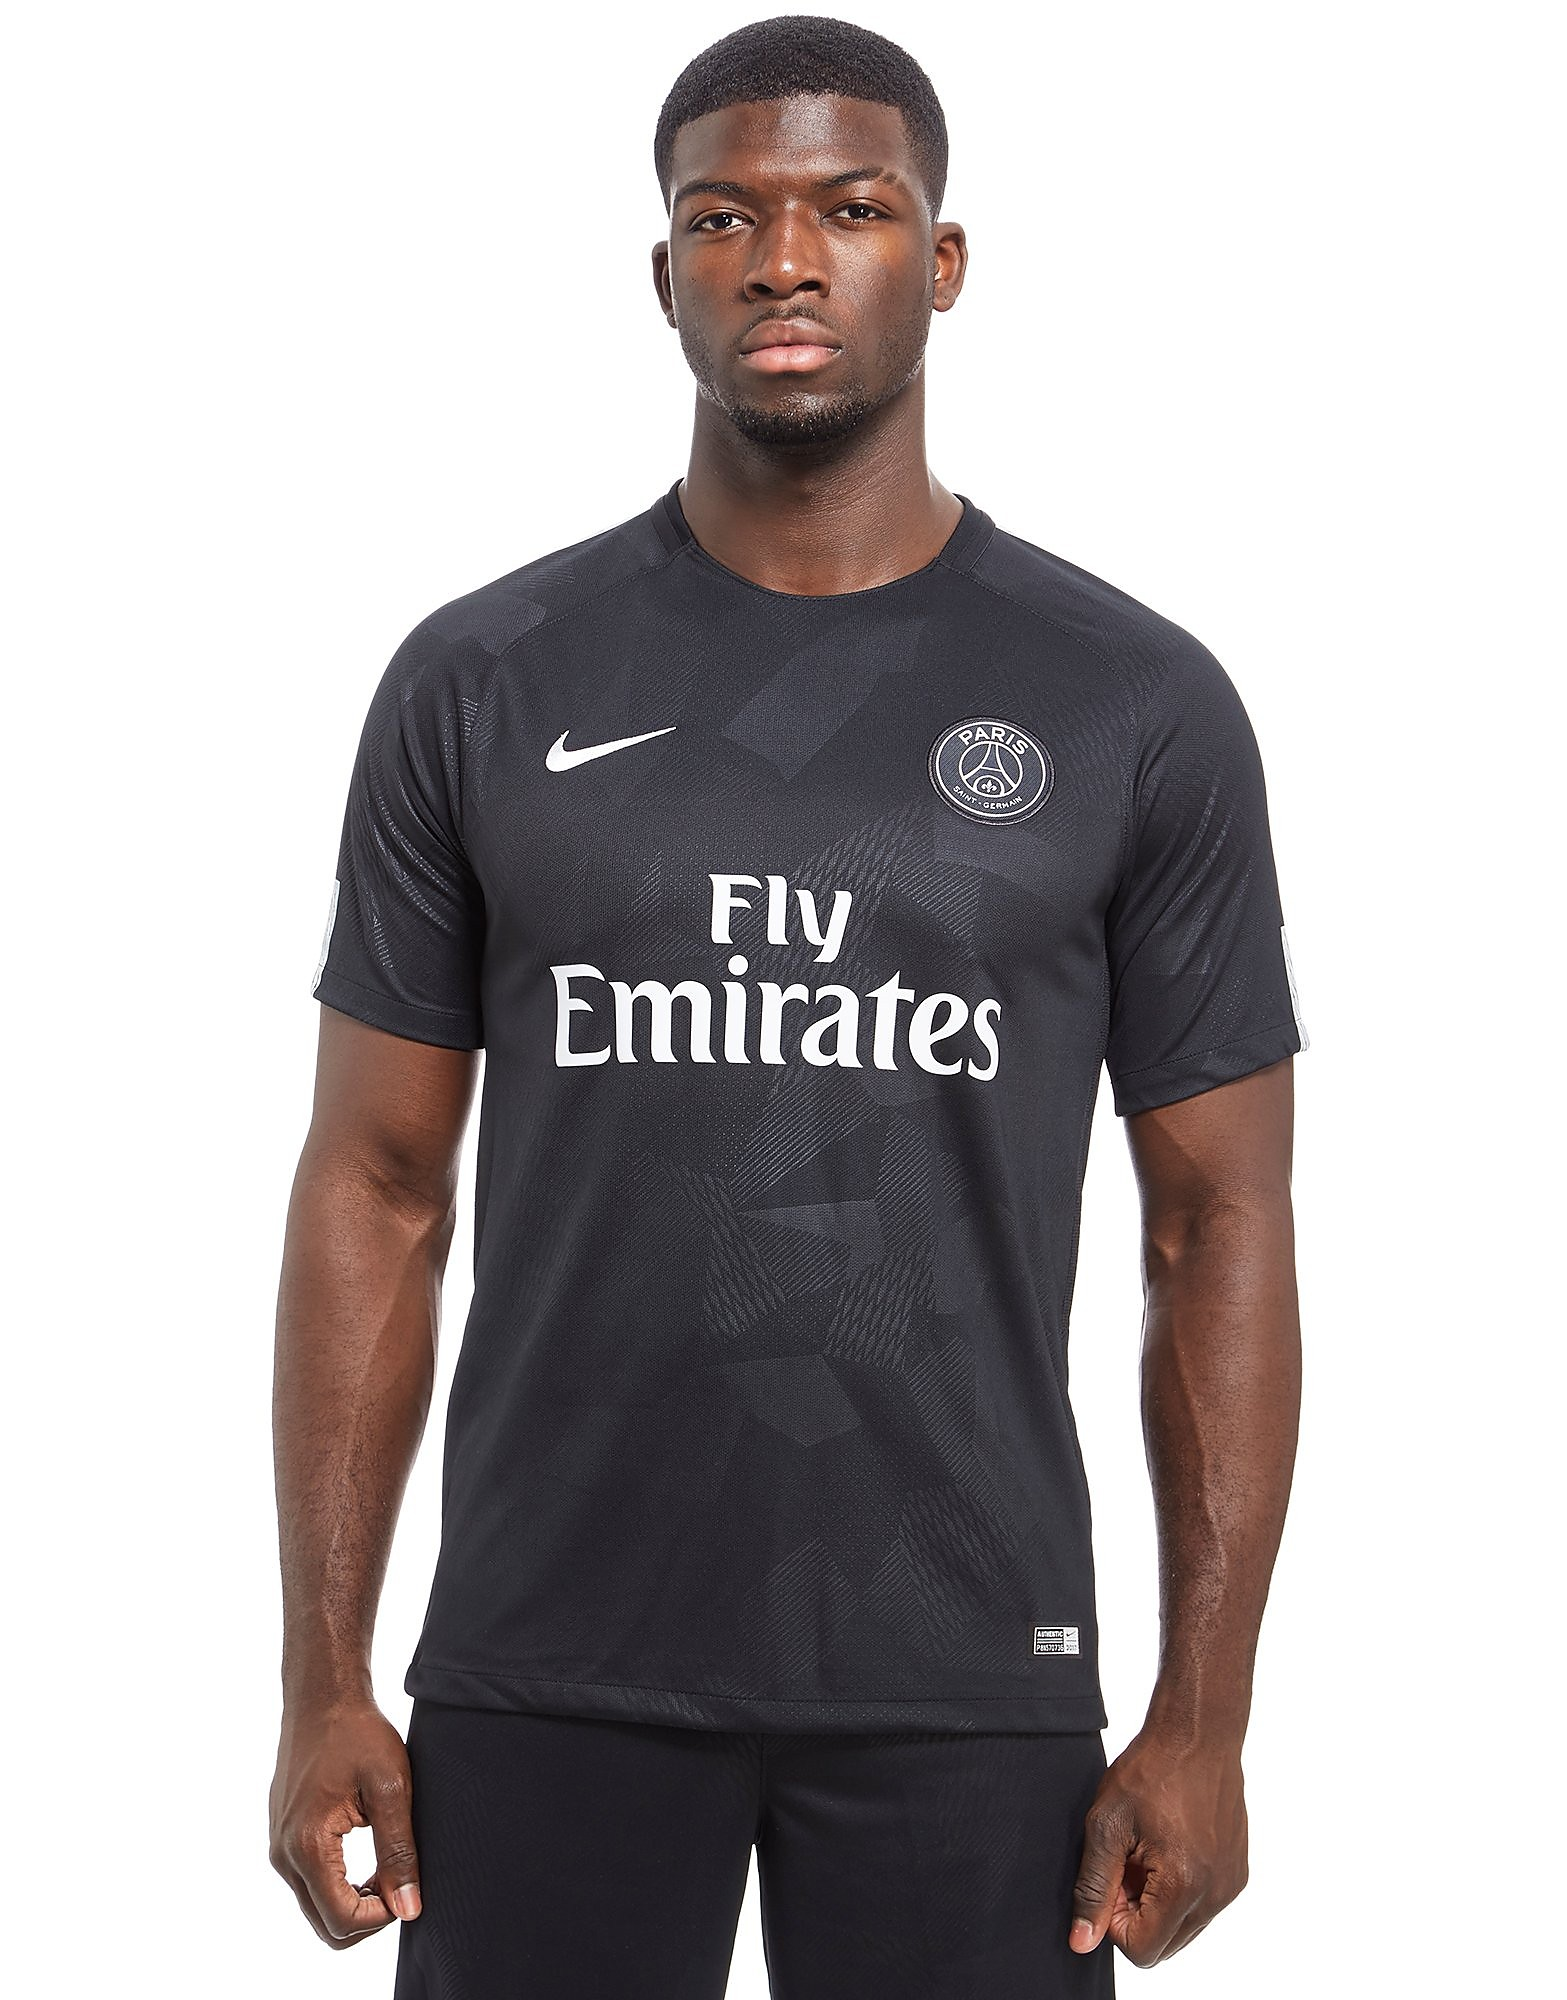 Nike camiseta 3.ª equipación Paris Saint Germain 2017/18